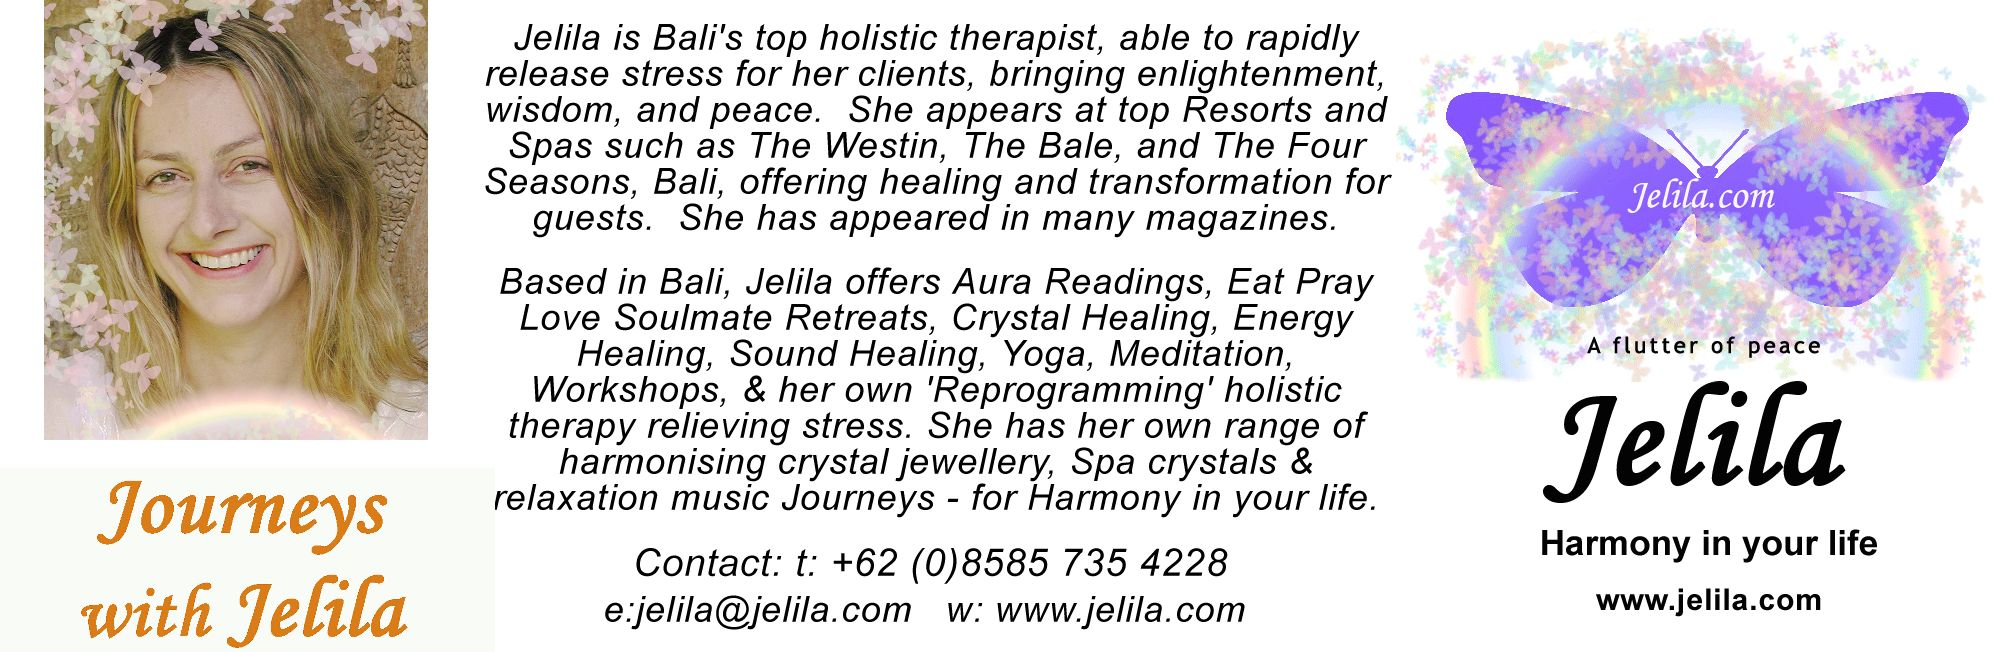 Jelila is Bali's top holistic therapist, able to rapidly release stress for her clients, bringing enlightenment, wisdom, and peace. She appears at top Resorts and Spas such as The Westin, The Bale, and The Four Seasons, Bali, offering healing and transformation for guests. She has appeared in many magazines. Based in Bali, Jelila offers Aura Readings, Eat Pray Love Soulmate Retreats, Crystal Healing, Energy Healing, Sound Healing, Yoga, Meditation, Workshops, & her own 'Reprogramming' holistic therapy relieving stress. She has her own range of harmonising crystal jewellery, Spa crystals & relaxation music Journeys - for Harmony in your life. Contact: t: +62 (0)8585 735 4228 e:jelila@jelila.com w: www.jelila.com